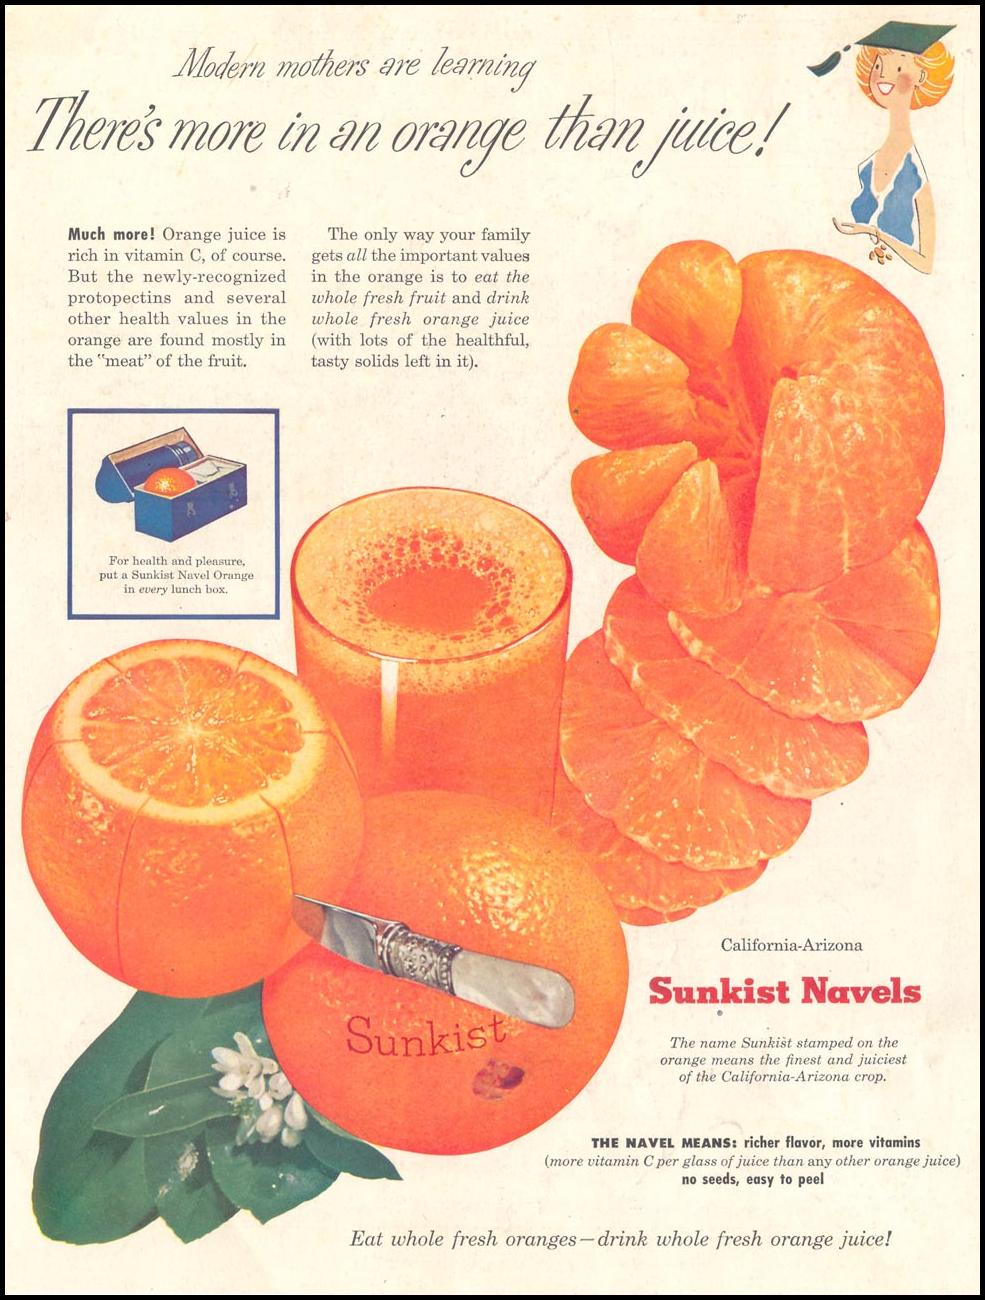 SUNKIST CALIFORNIA-ARIZONA NAVEL ORANGES SATURDAY EVENING POST 04/09/1955 BACK COVER